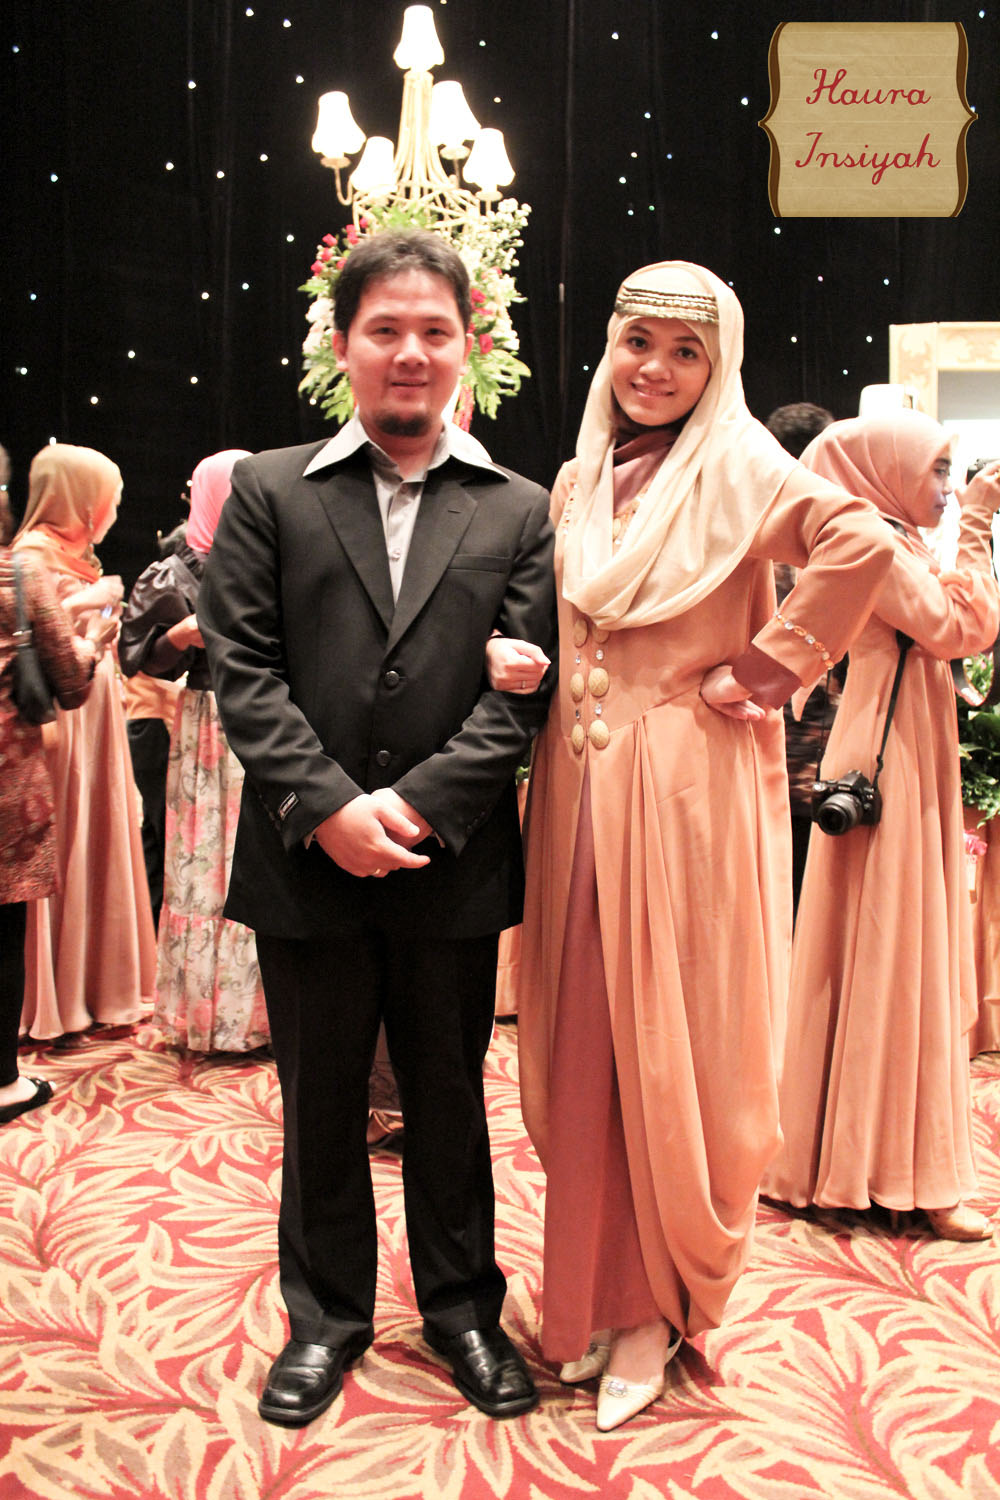 nadya-3-of-2-copy Style Inspiration: My Brown Abaya